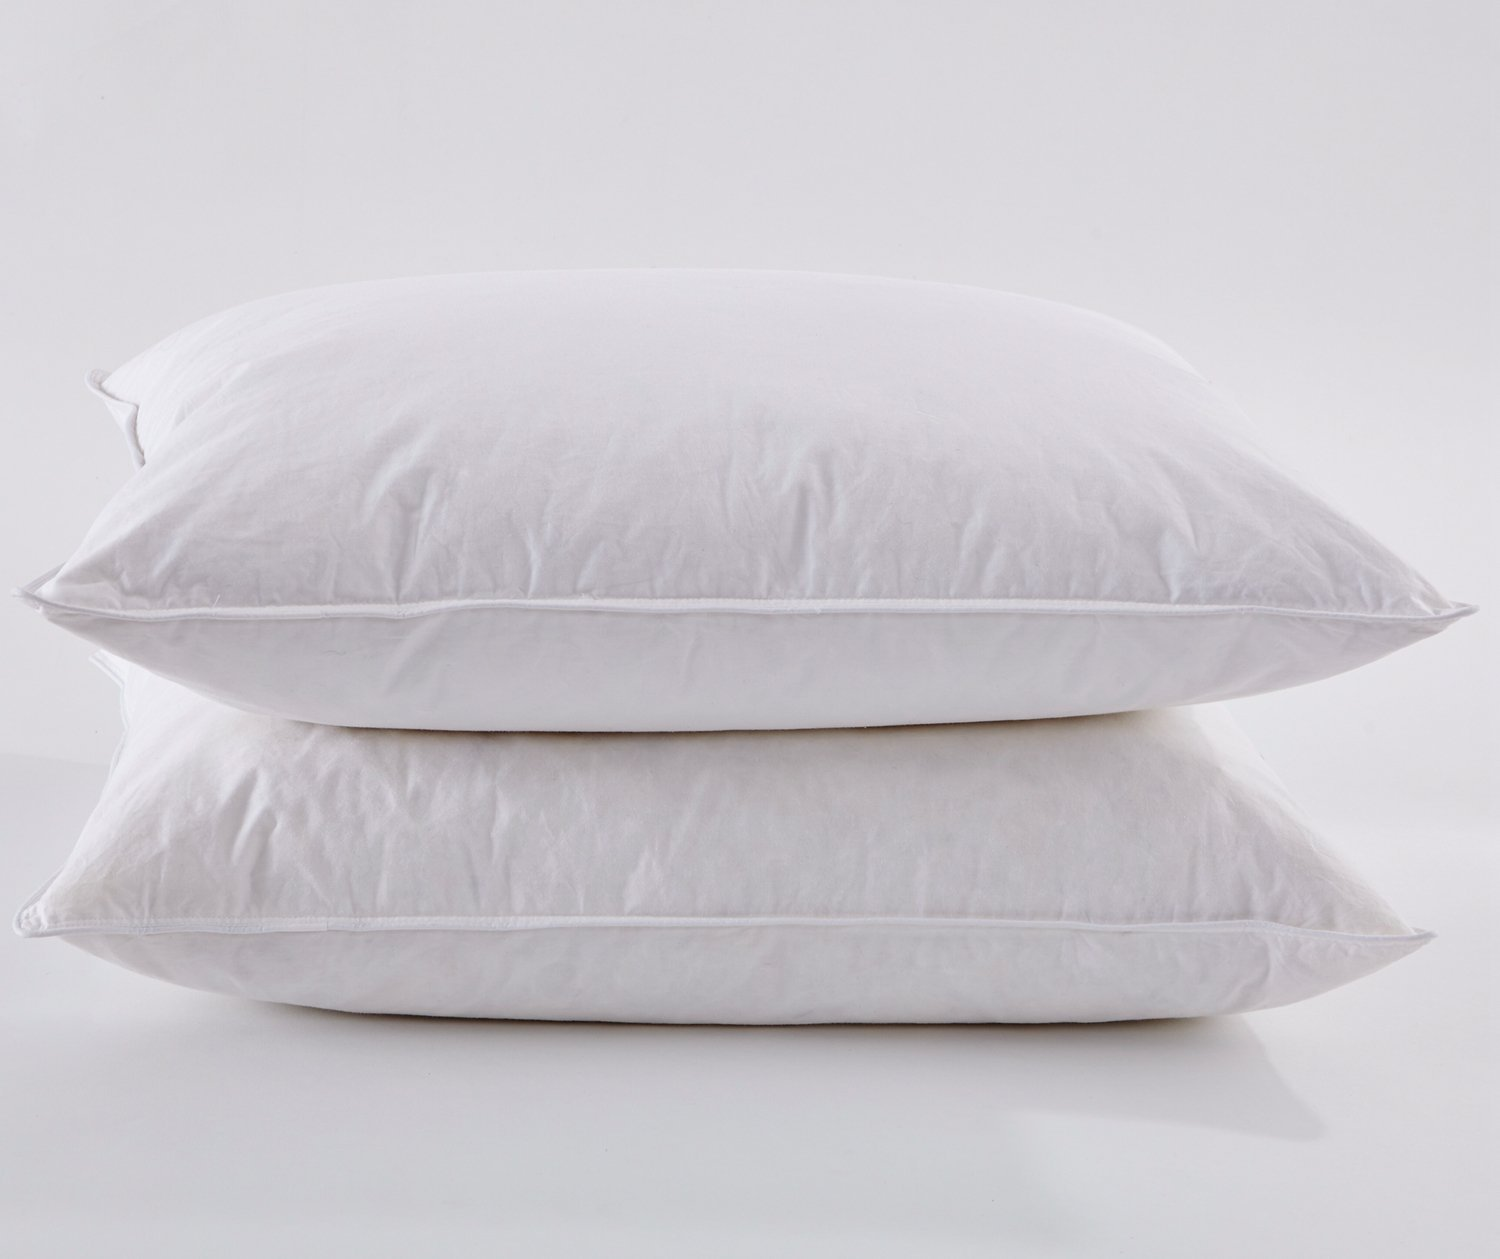 Get the best down pillows at Amazon